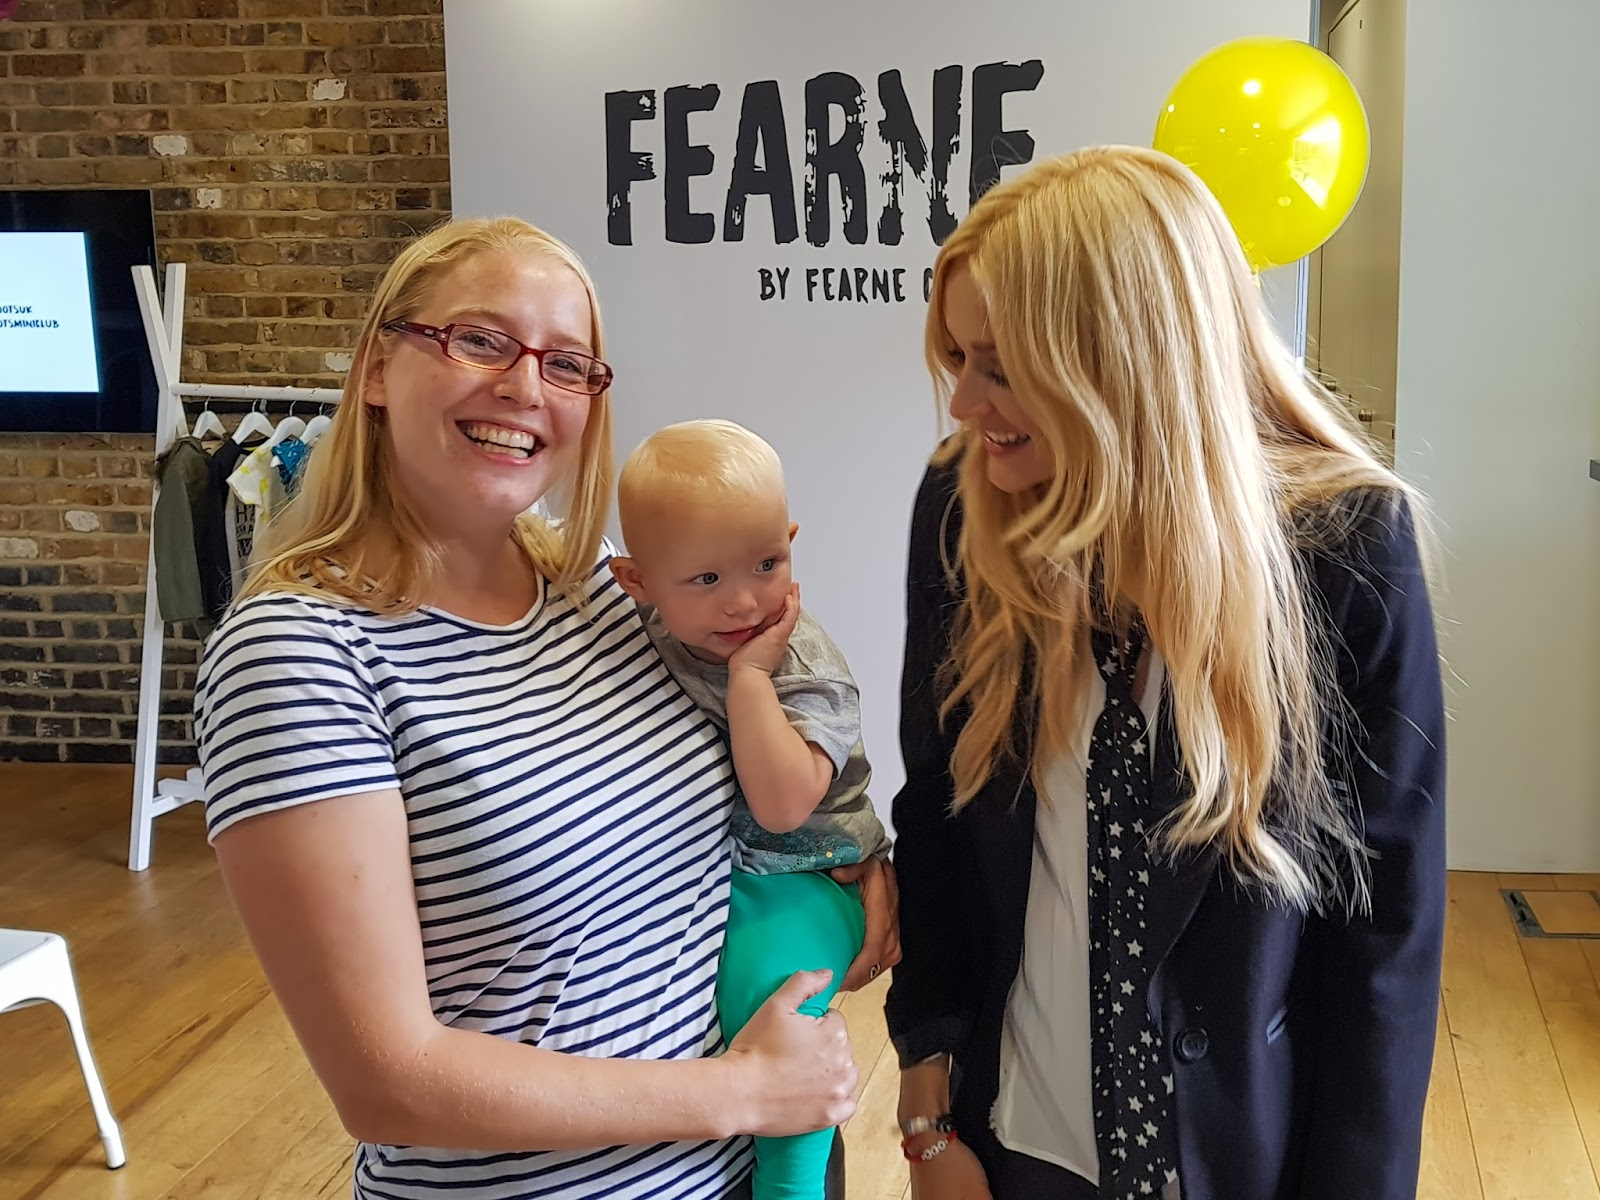 Me grinning at the camera, holding my toddler while Fearne Cotton smiles at my toddler